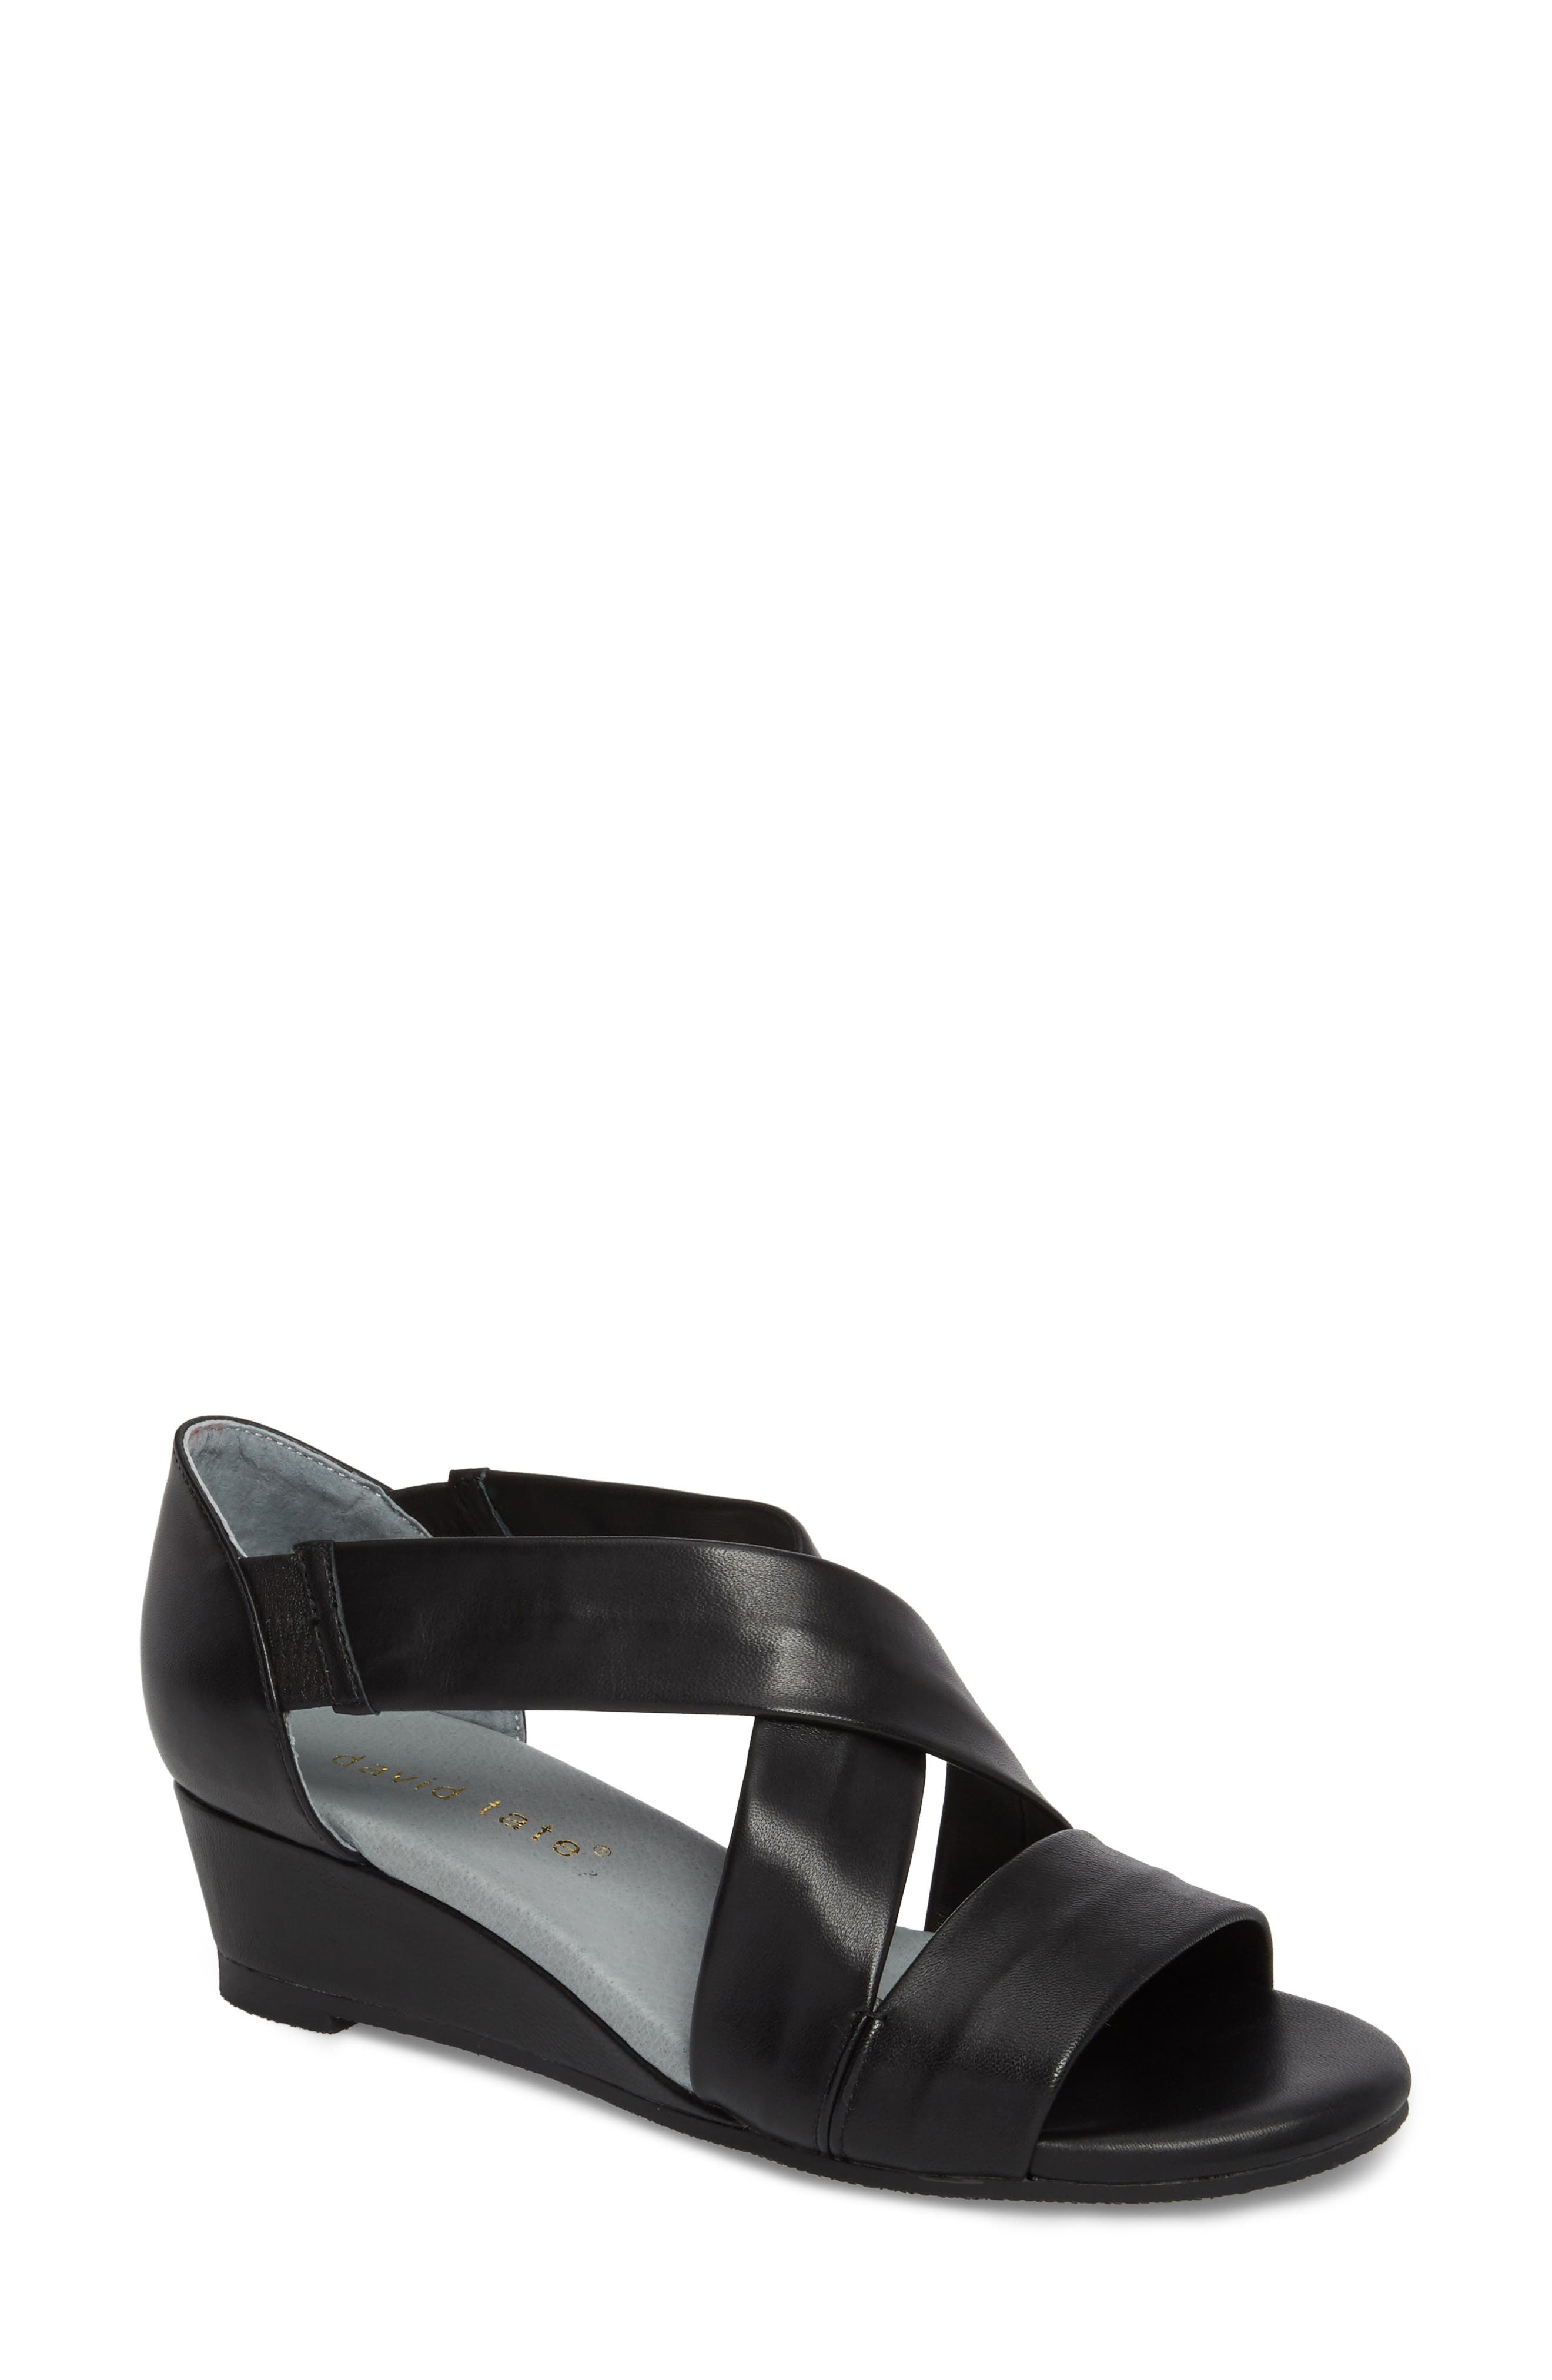 Swell Cross Strap Wedge Sandal,                         Main,                         color, Black Leather